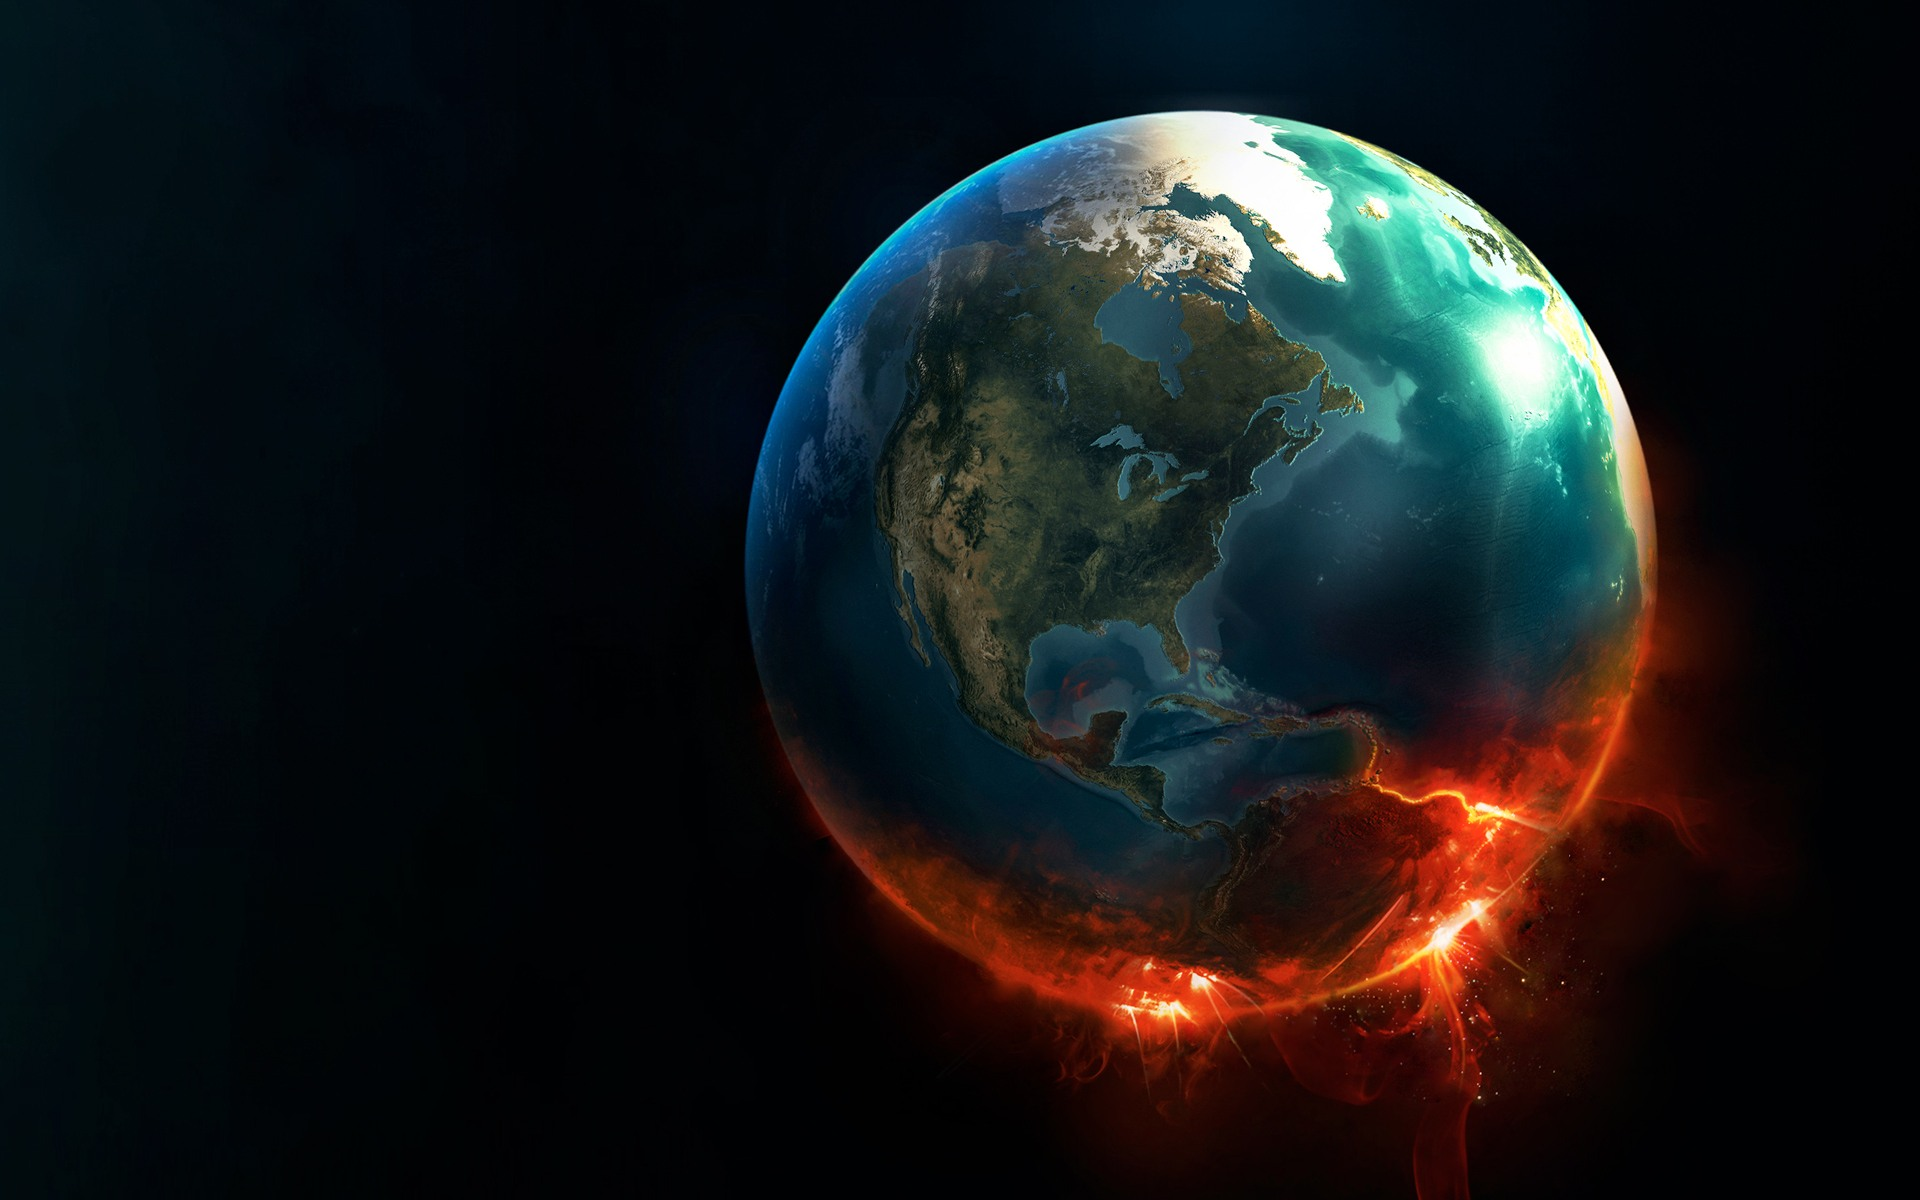 I Like To Waste My Time: Daily Wallpaper: World On Fire